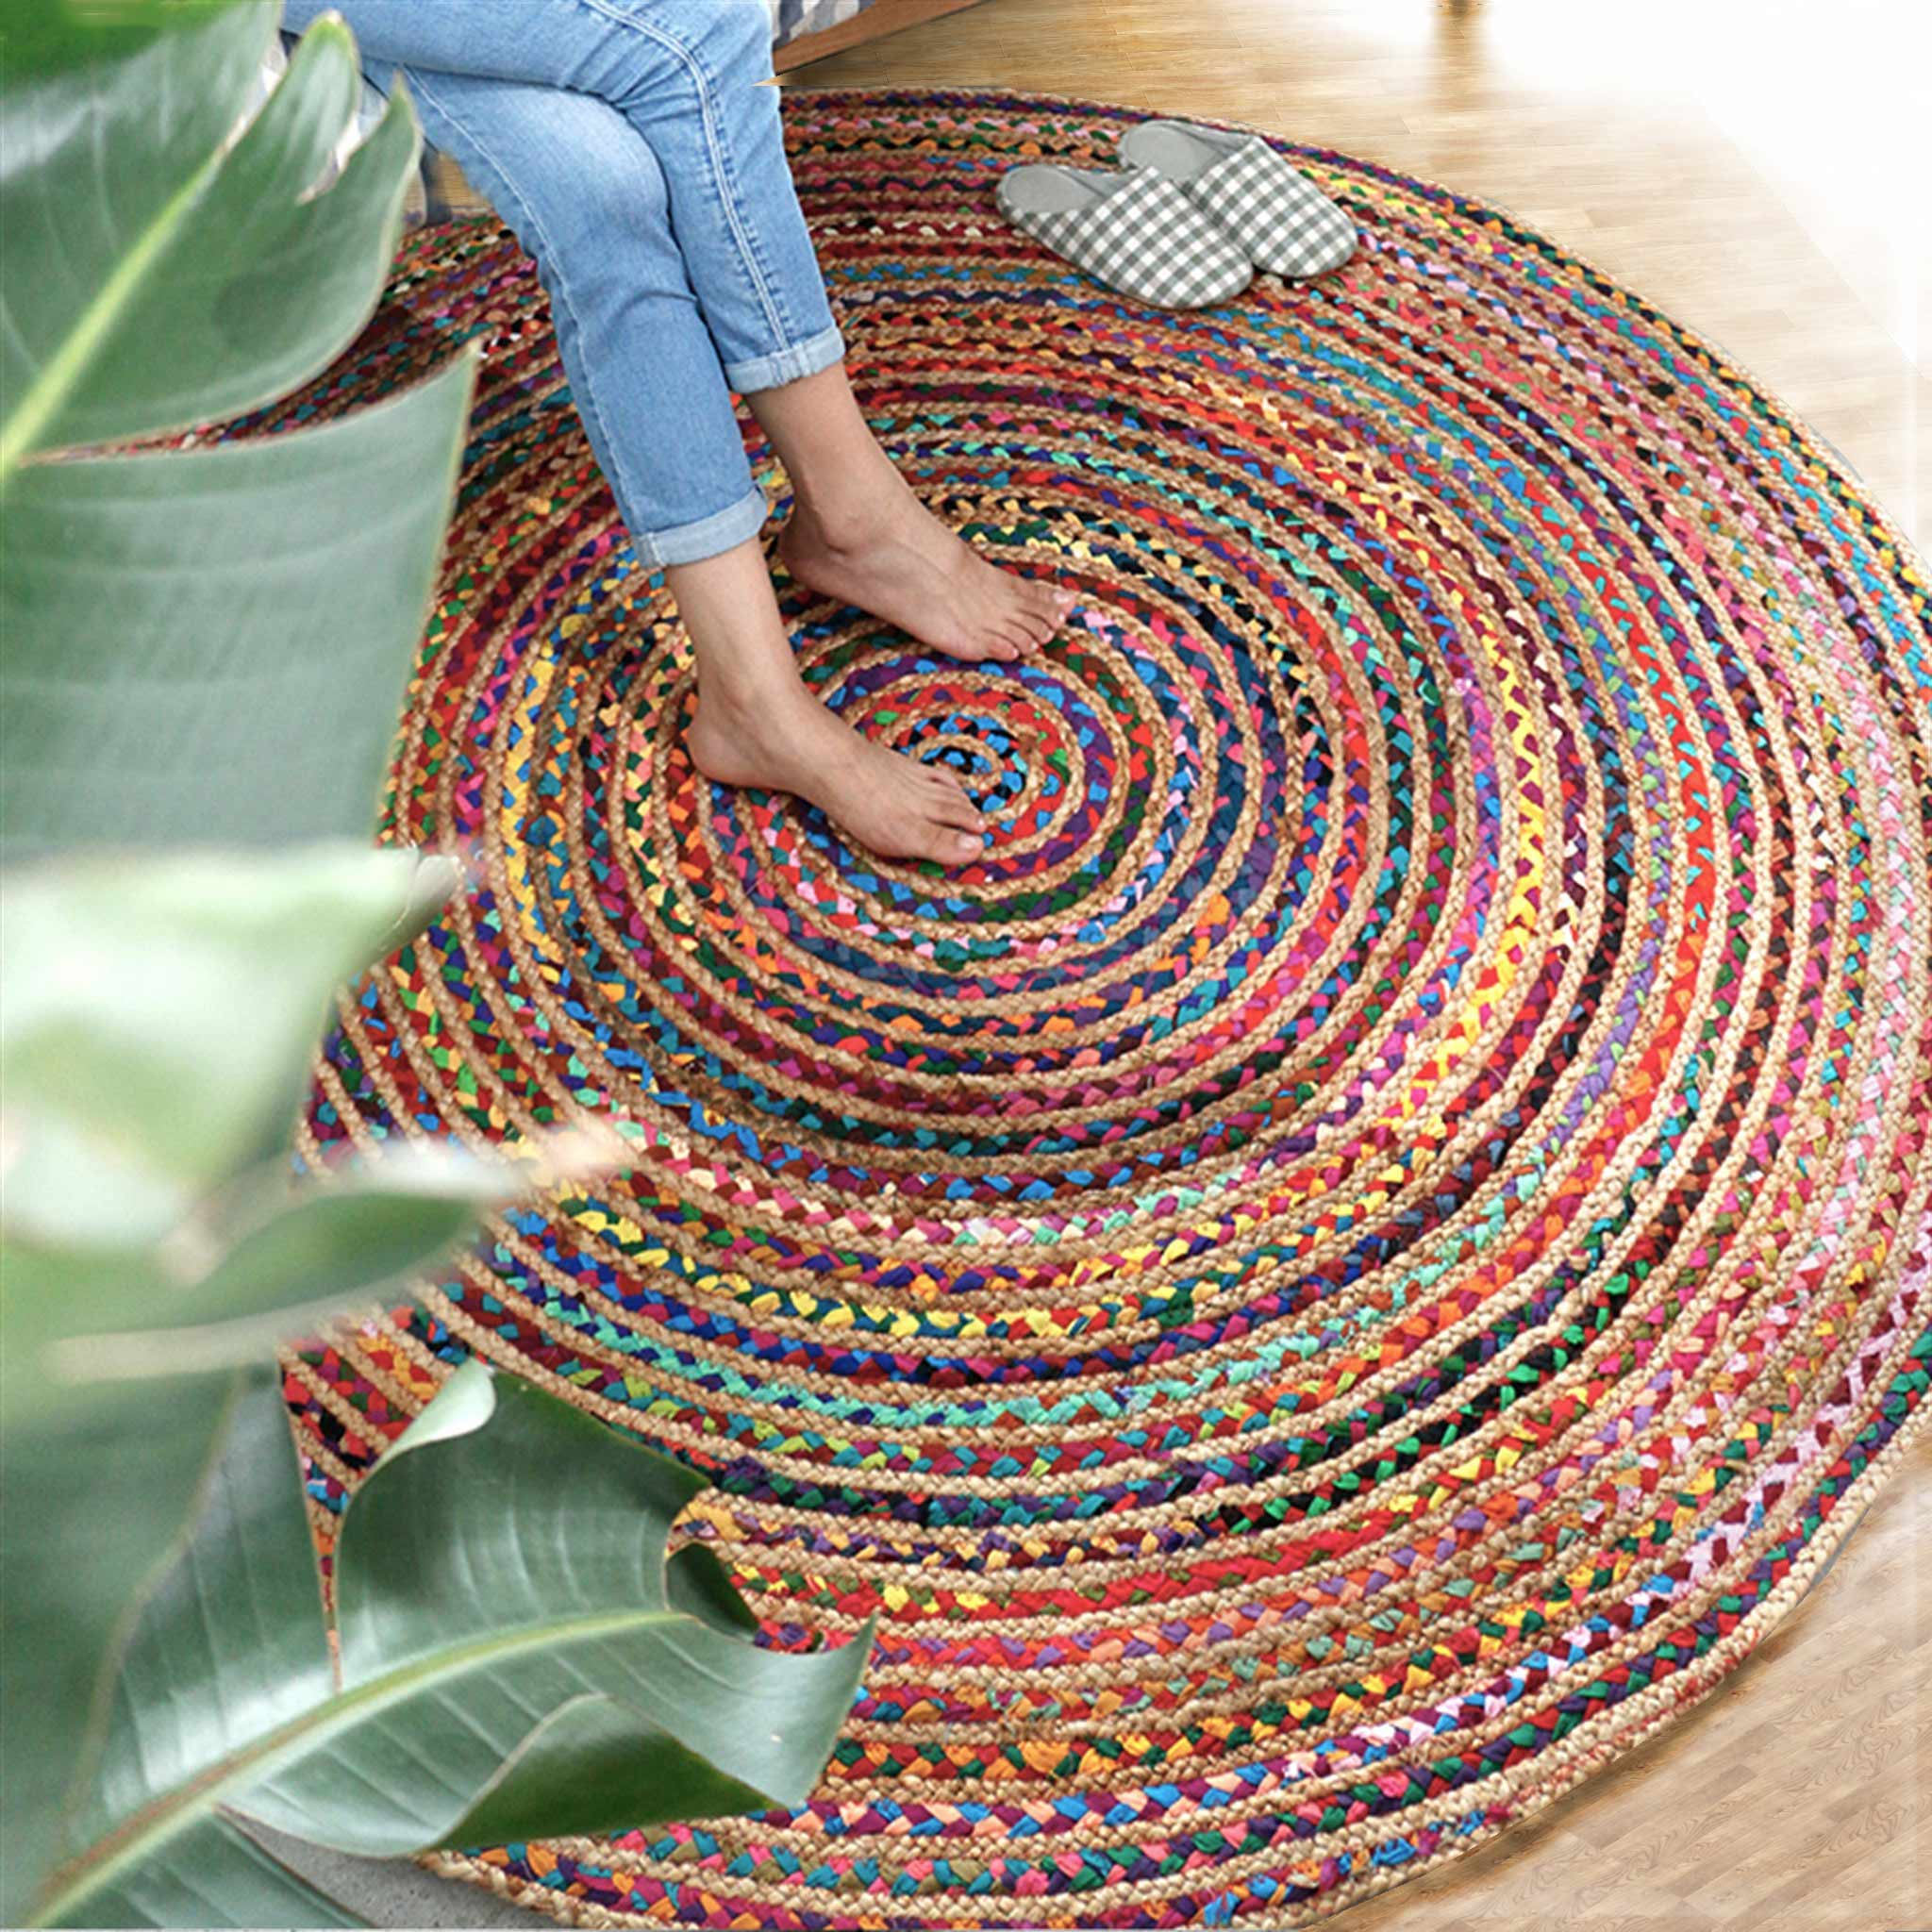 Hand Made Knitted Cotton Linen Round Carpets For Living Room Bedroom Bedside Rugs India Exported Computer Chair Round Rug Mat